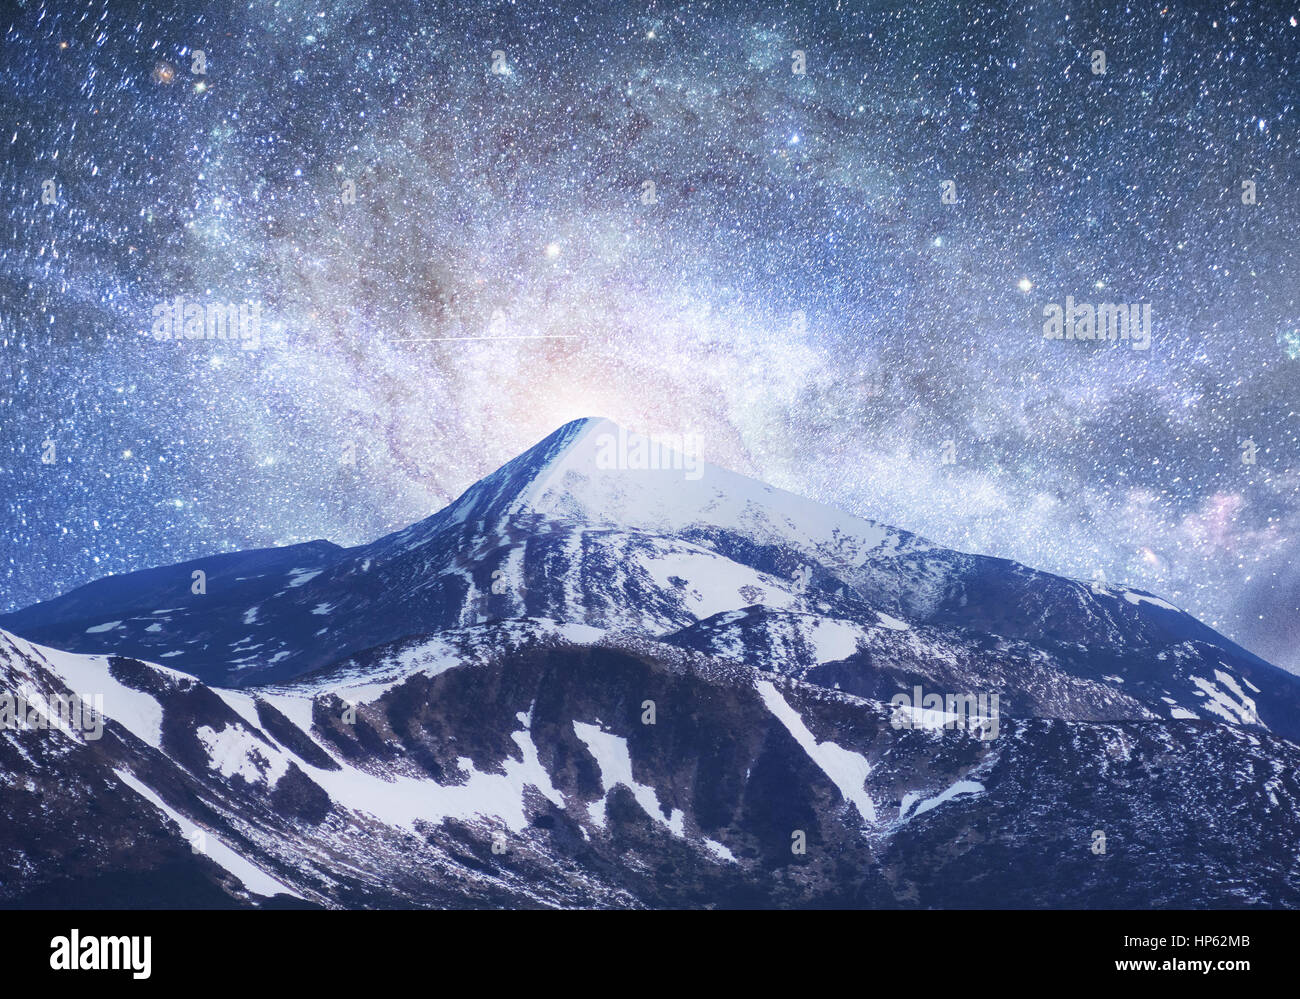 Fantastic starry sky. Beautiful winter landscape and snow-capped - Stock Image